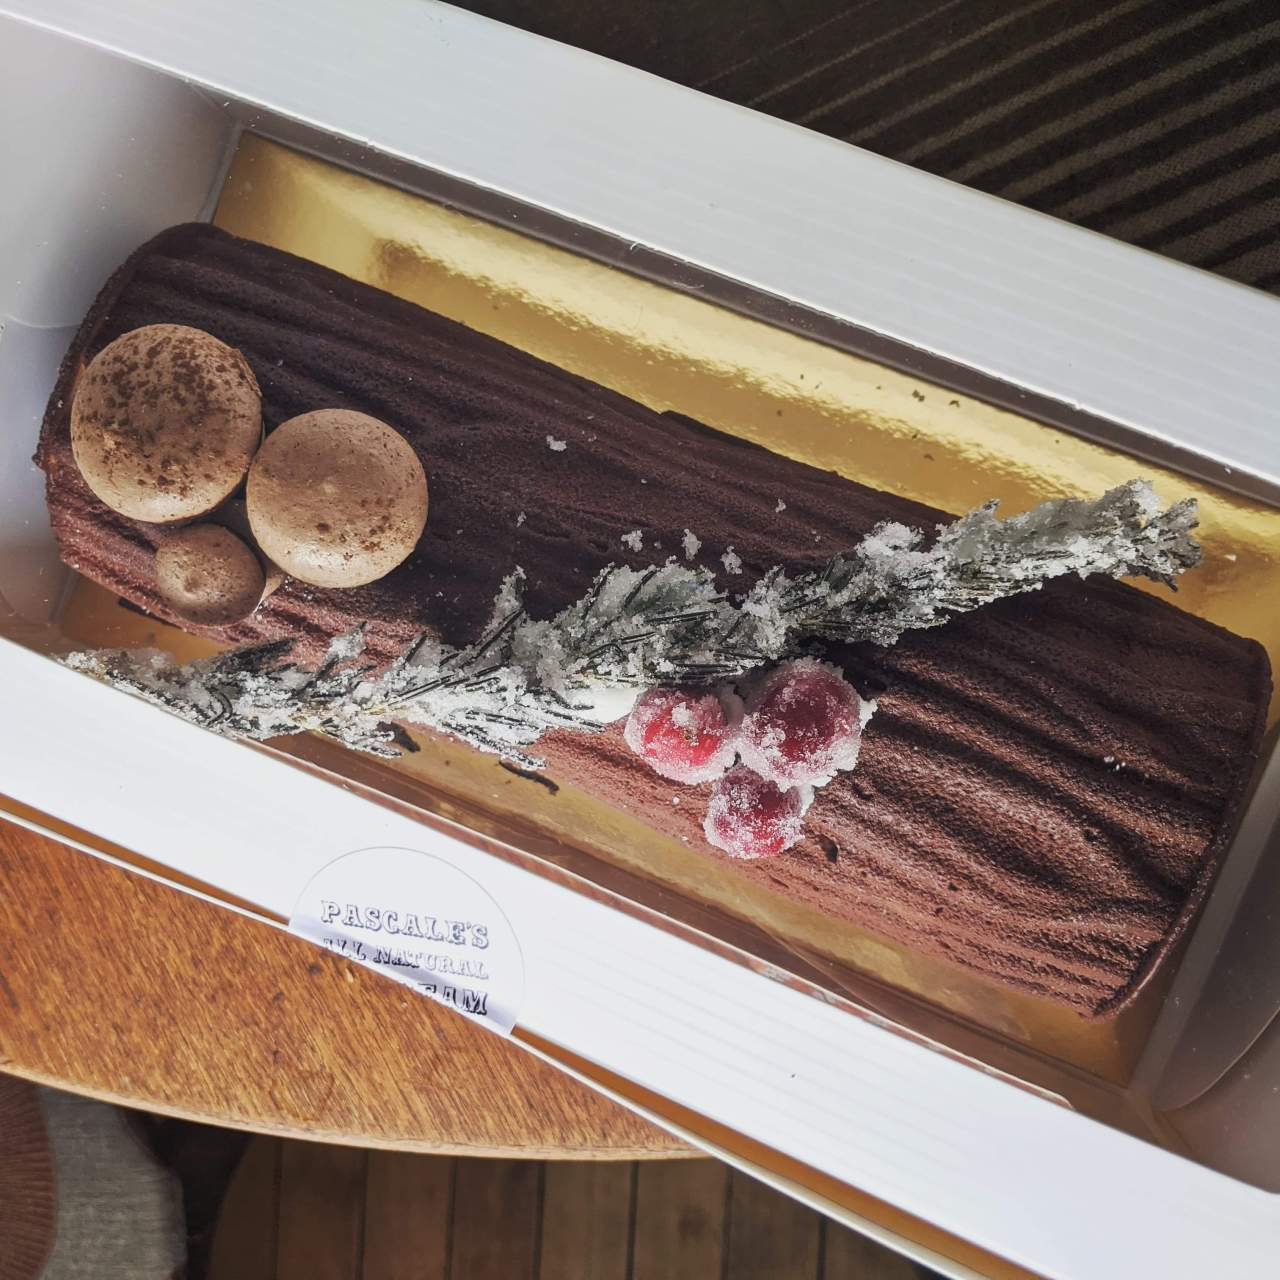 Christmas yule log made from ice cream